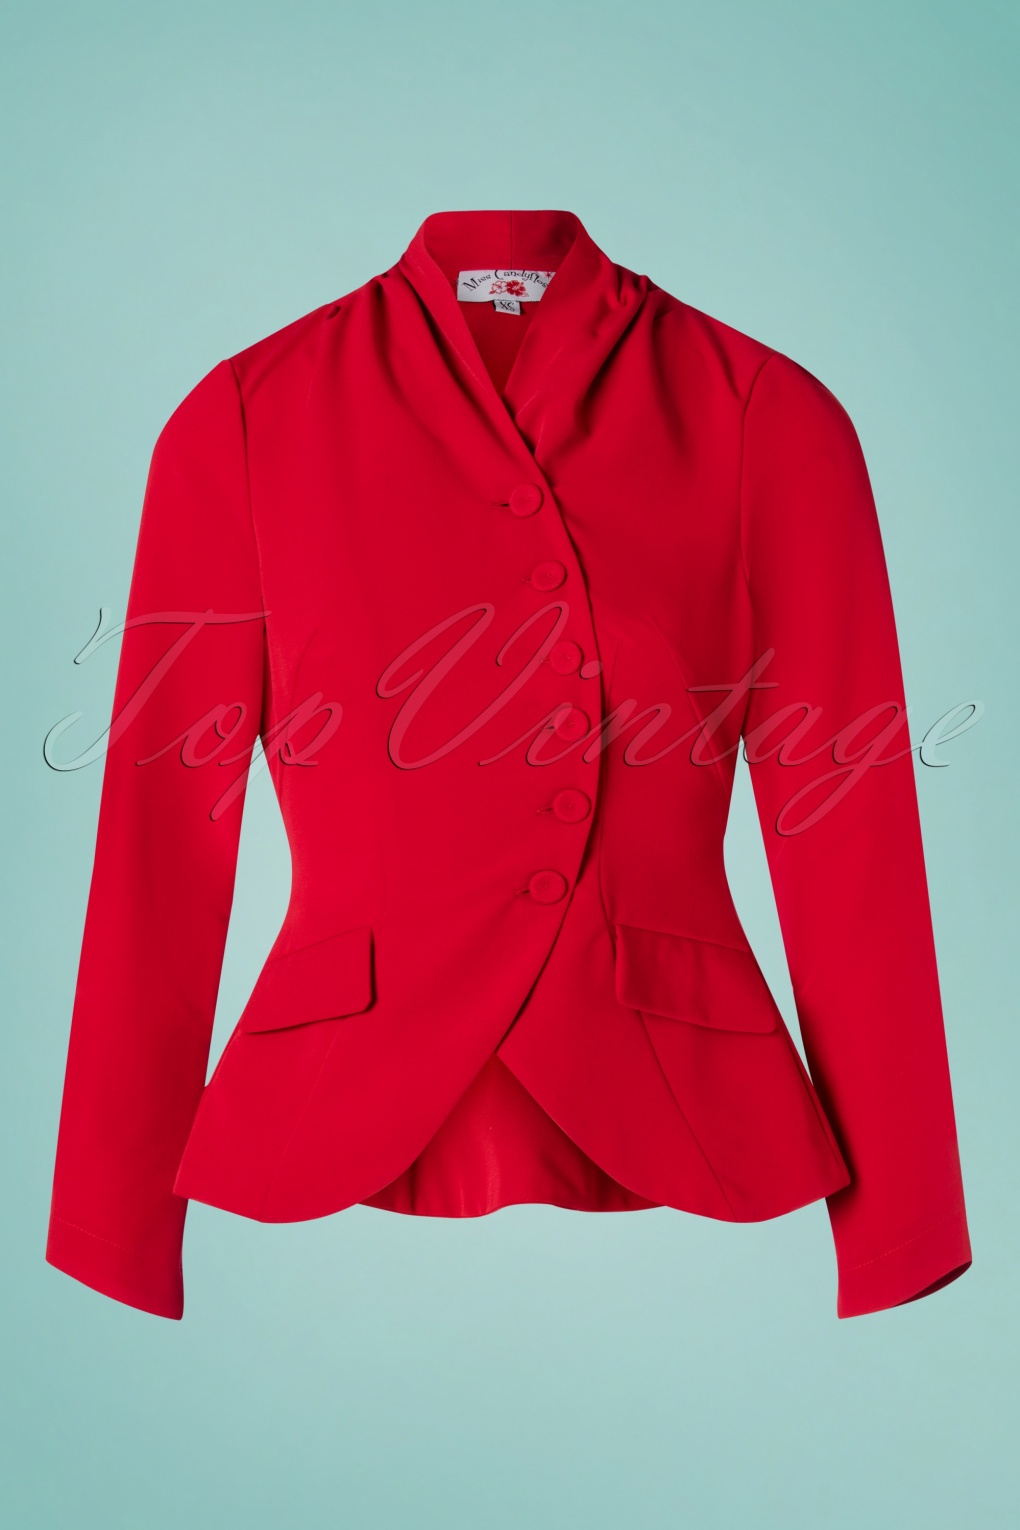 1950s Jackets, Coats, Bolero | Swing, Pin Up, Rockabilly 40s Clemence Jacket in Red �74.13 AT vintagedancer.com